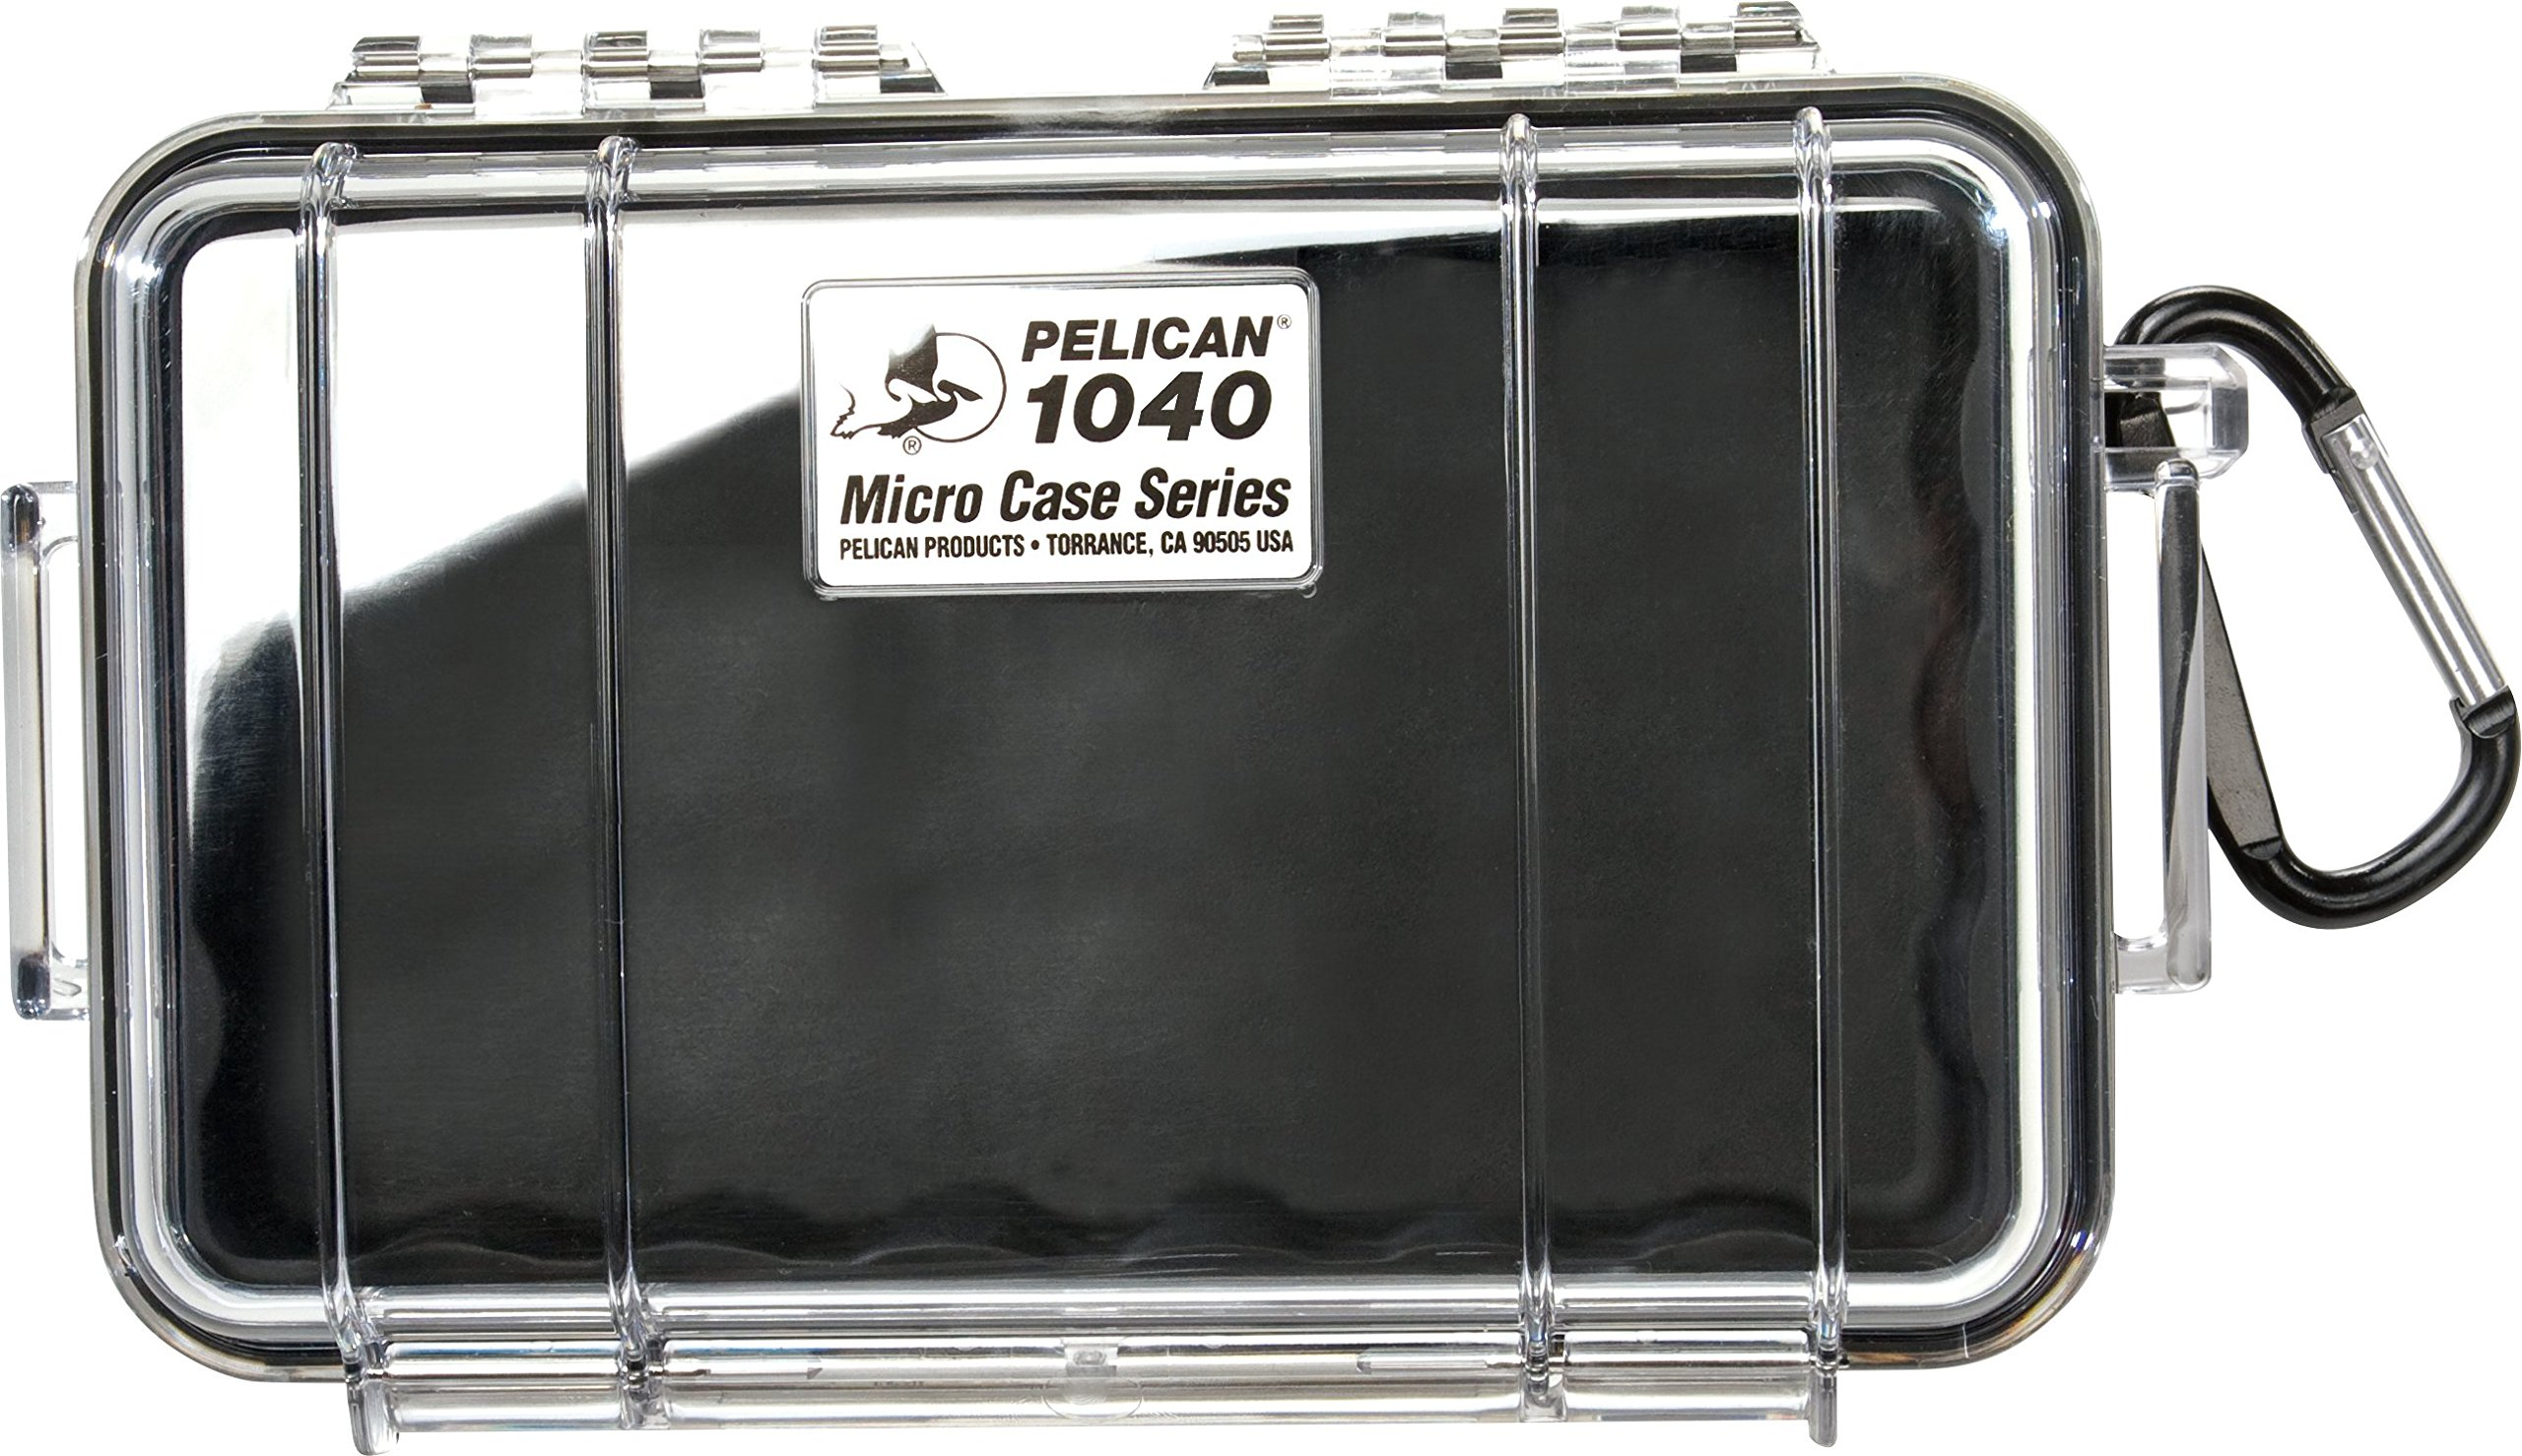 Waterproof Case | Pelican 1040 Micro Case - for iPhone, cell phone, GoPro, camera, and more (Black/Clear) by Pelican